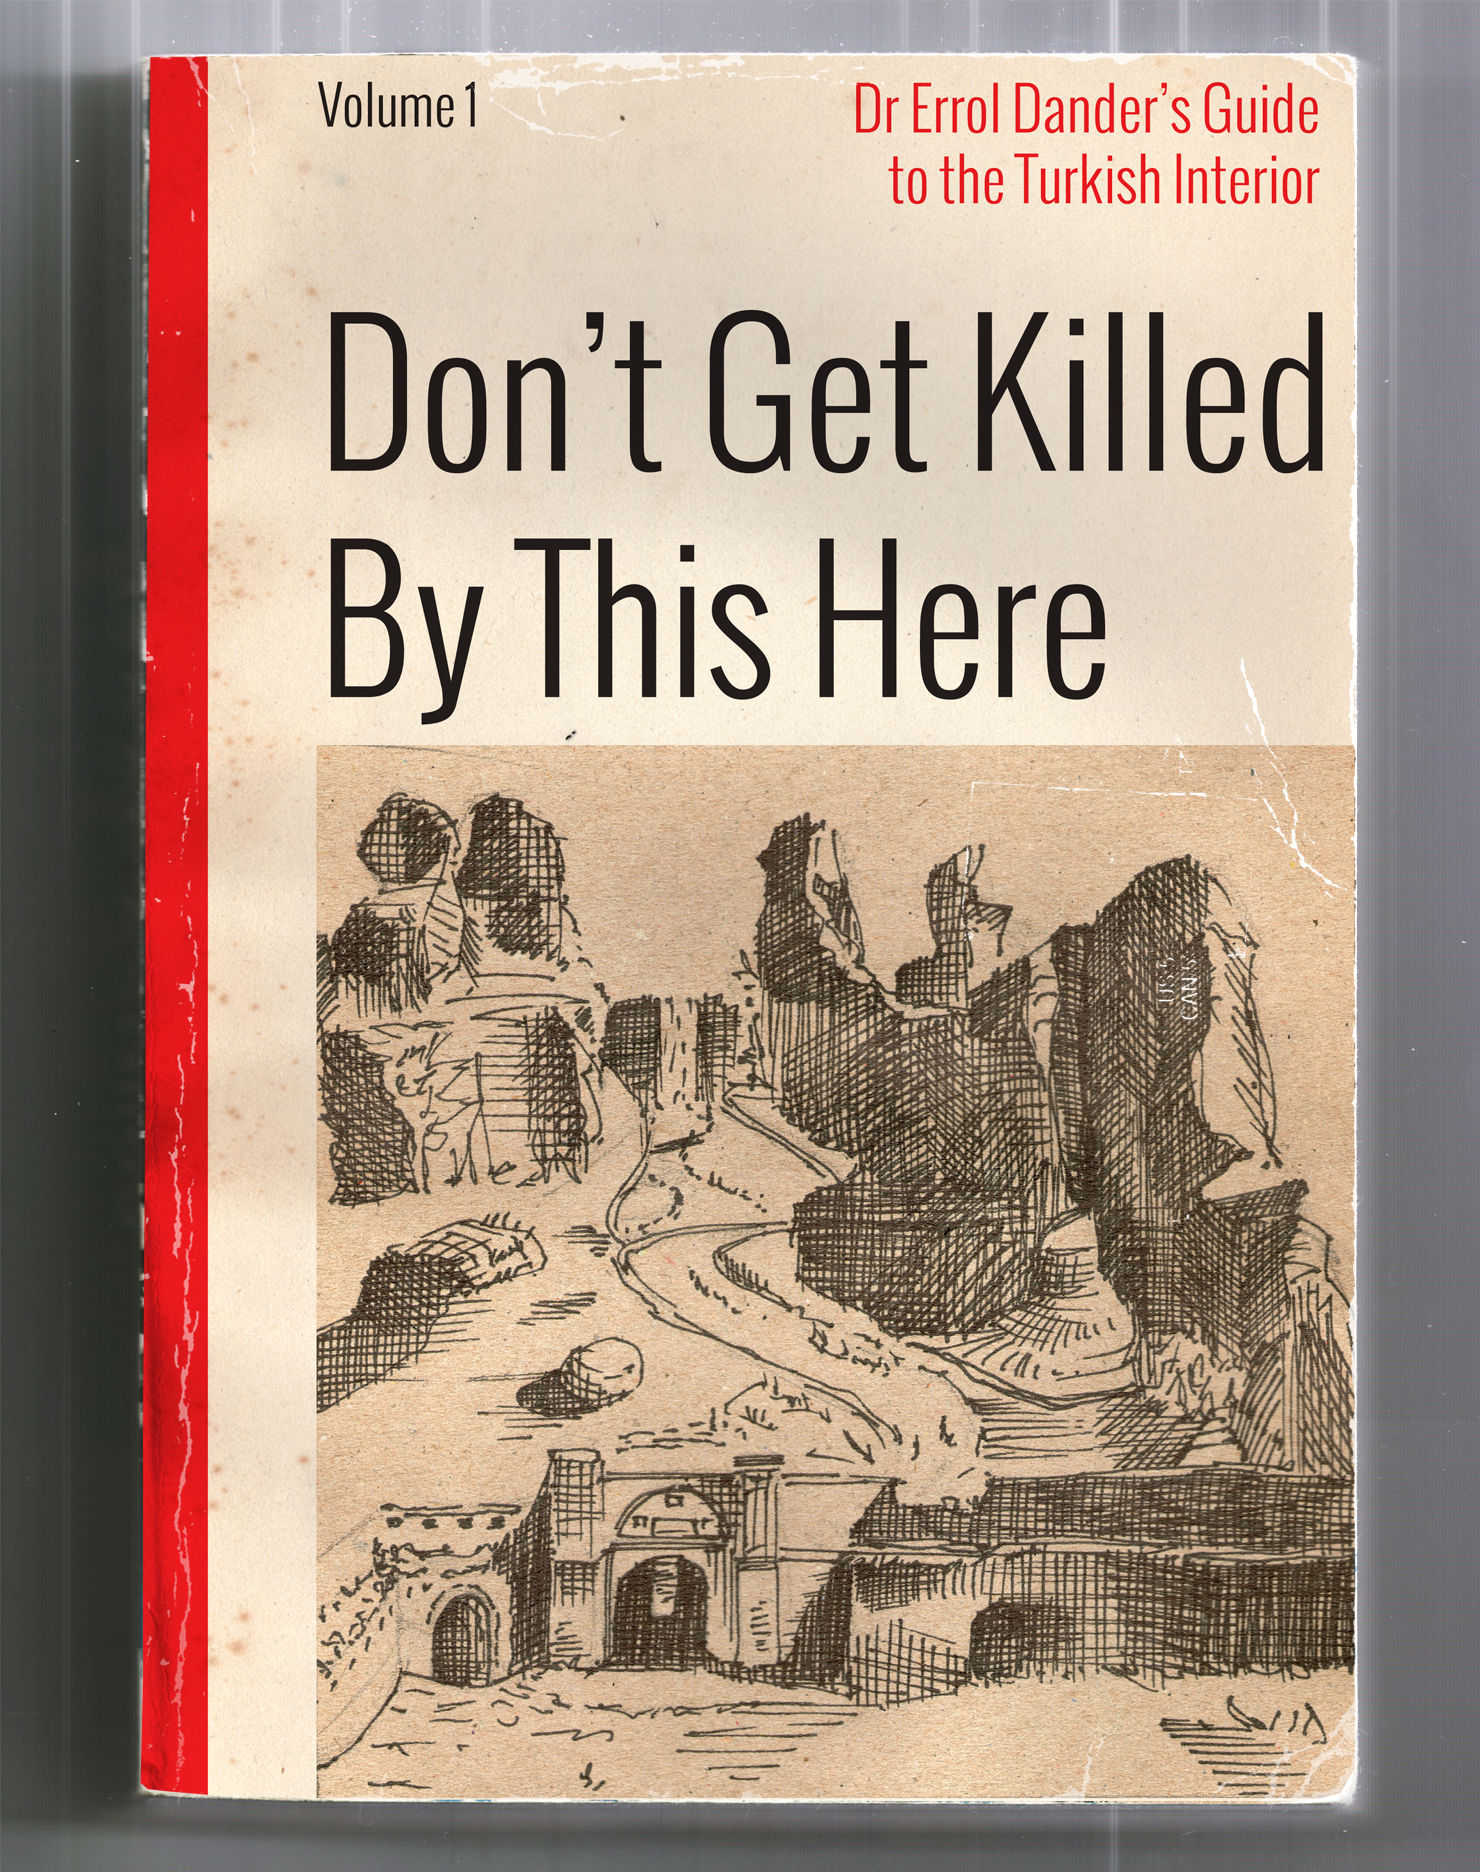 Travel Guide by Dr Dander, courtesy of World War 2 and a Half